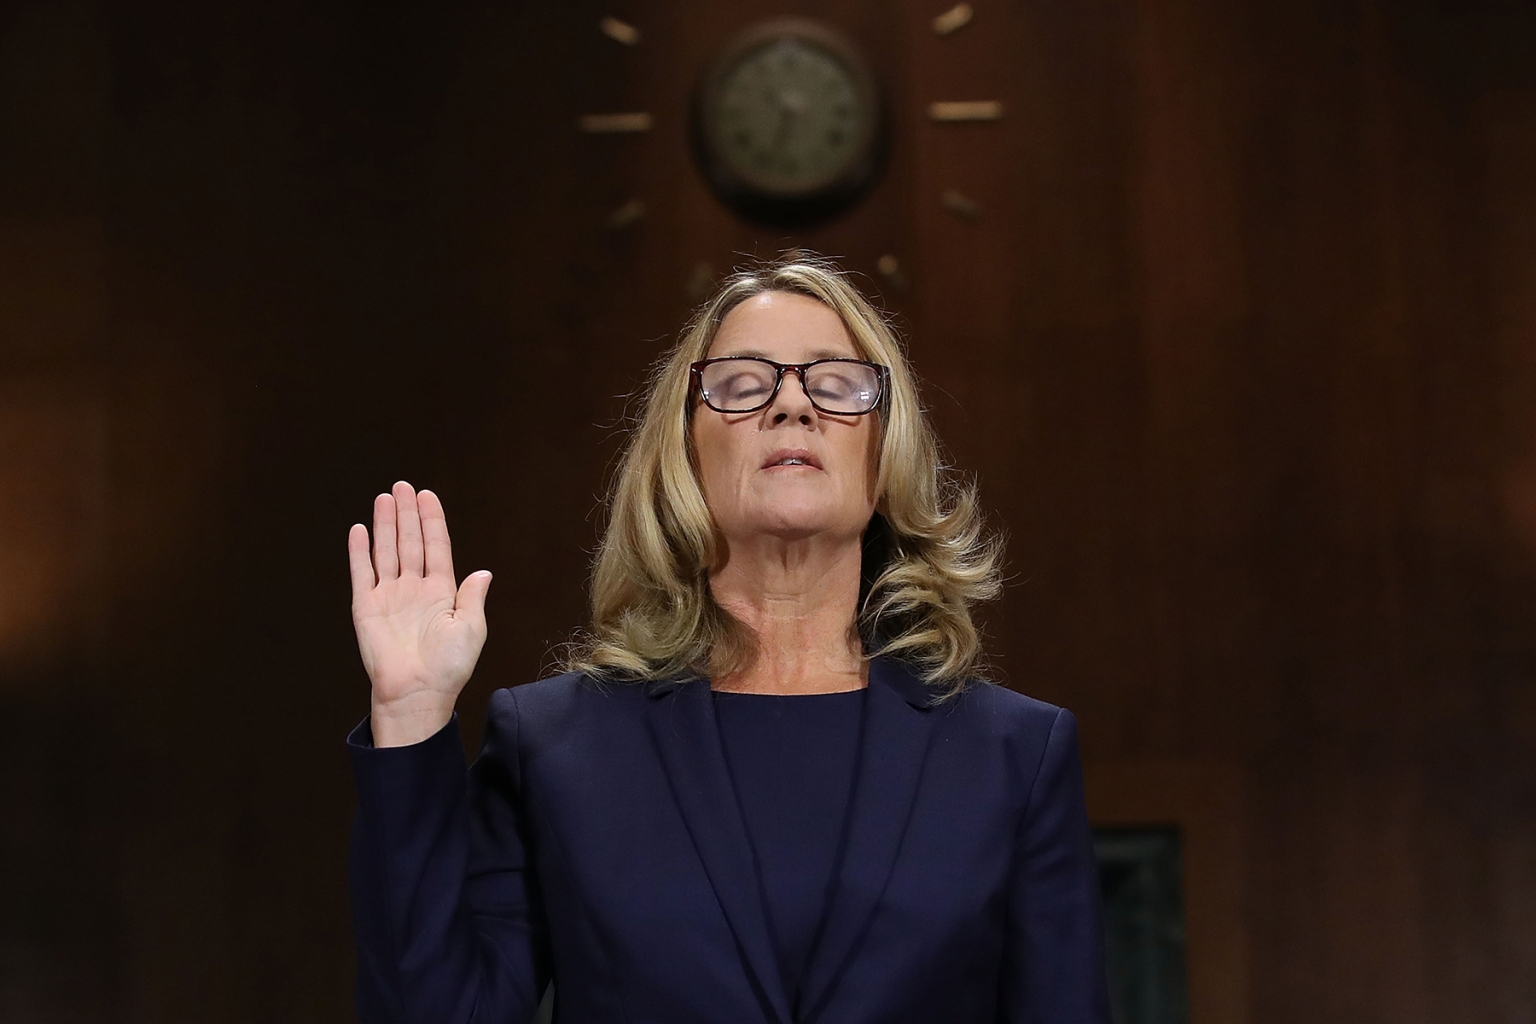 Christine Blasey Ford is sworn in before the Senate Judiciary Committee hearing on sexual assault allegations against Supreme Court nominee Brett Kavanaugh in Washington on Sept. 27. Win McNamee/Getty Images